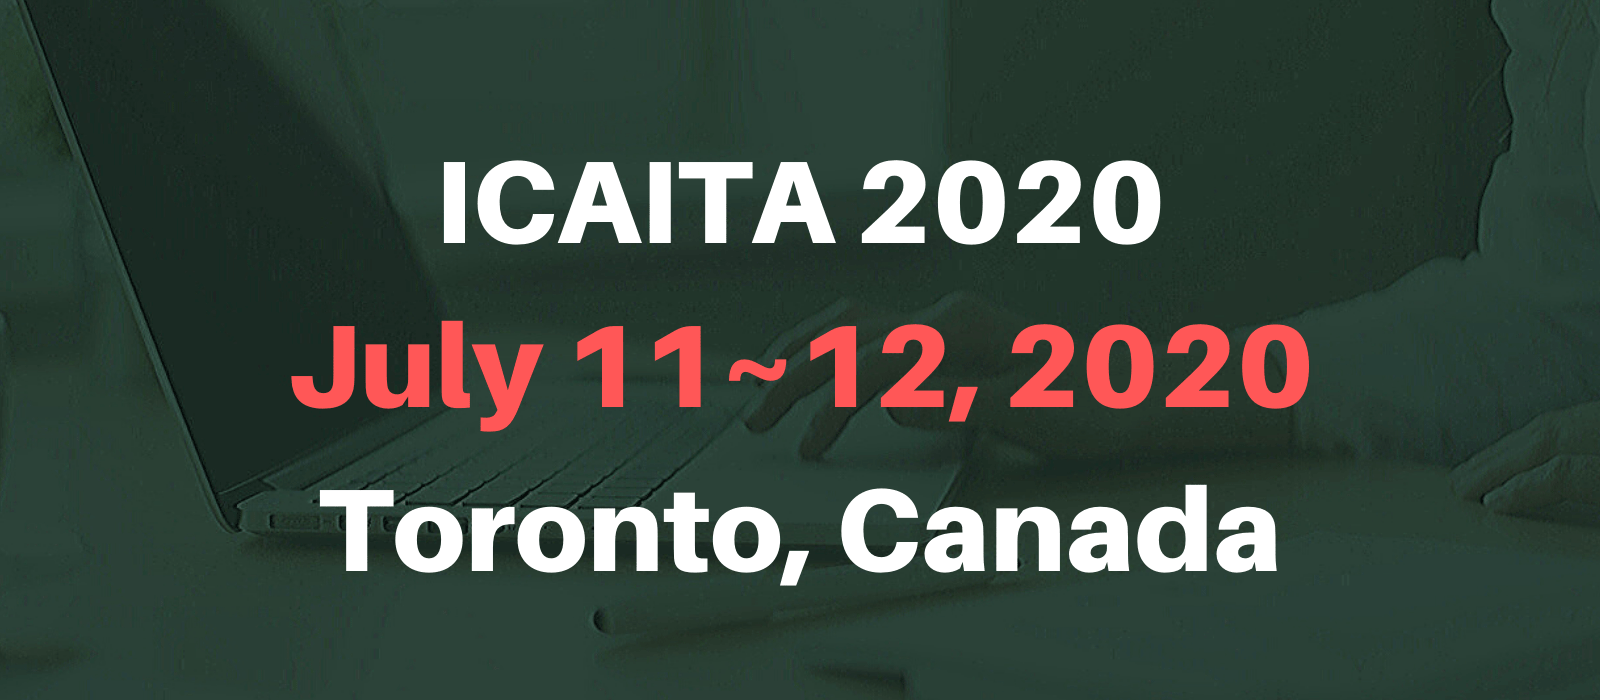 9th International Conference on Advanced Information Technologies and Applications (ICAITA 2020)